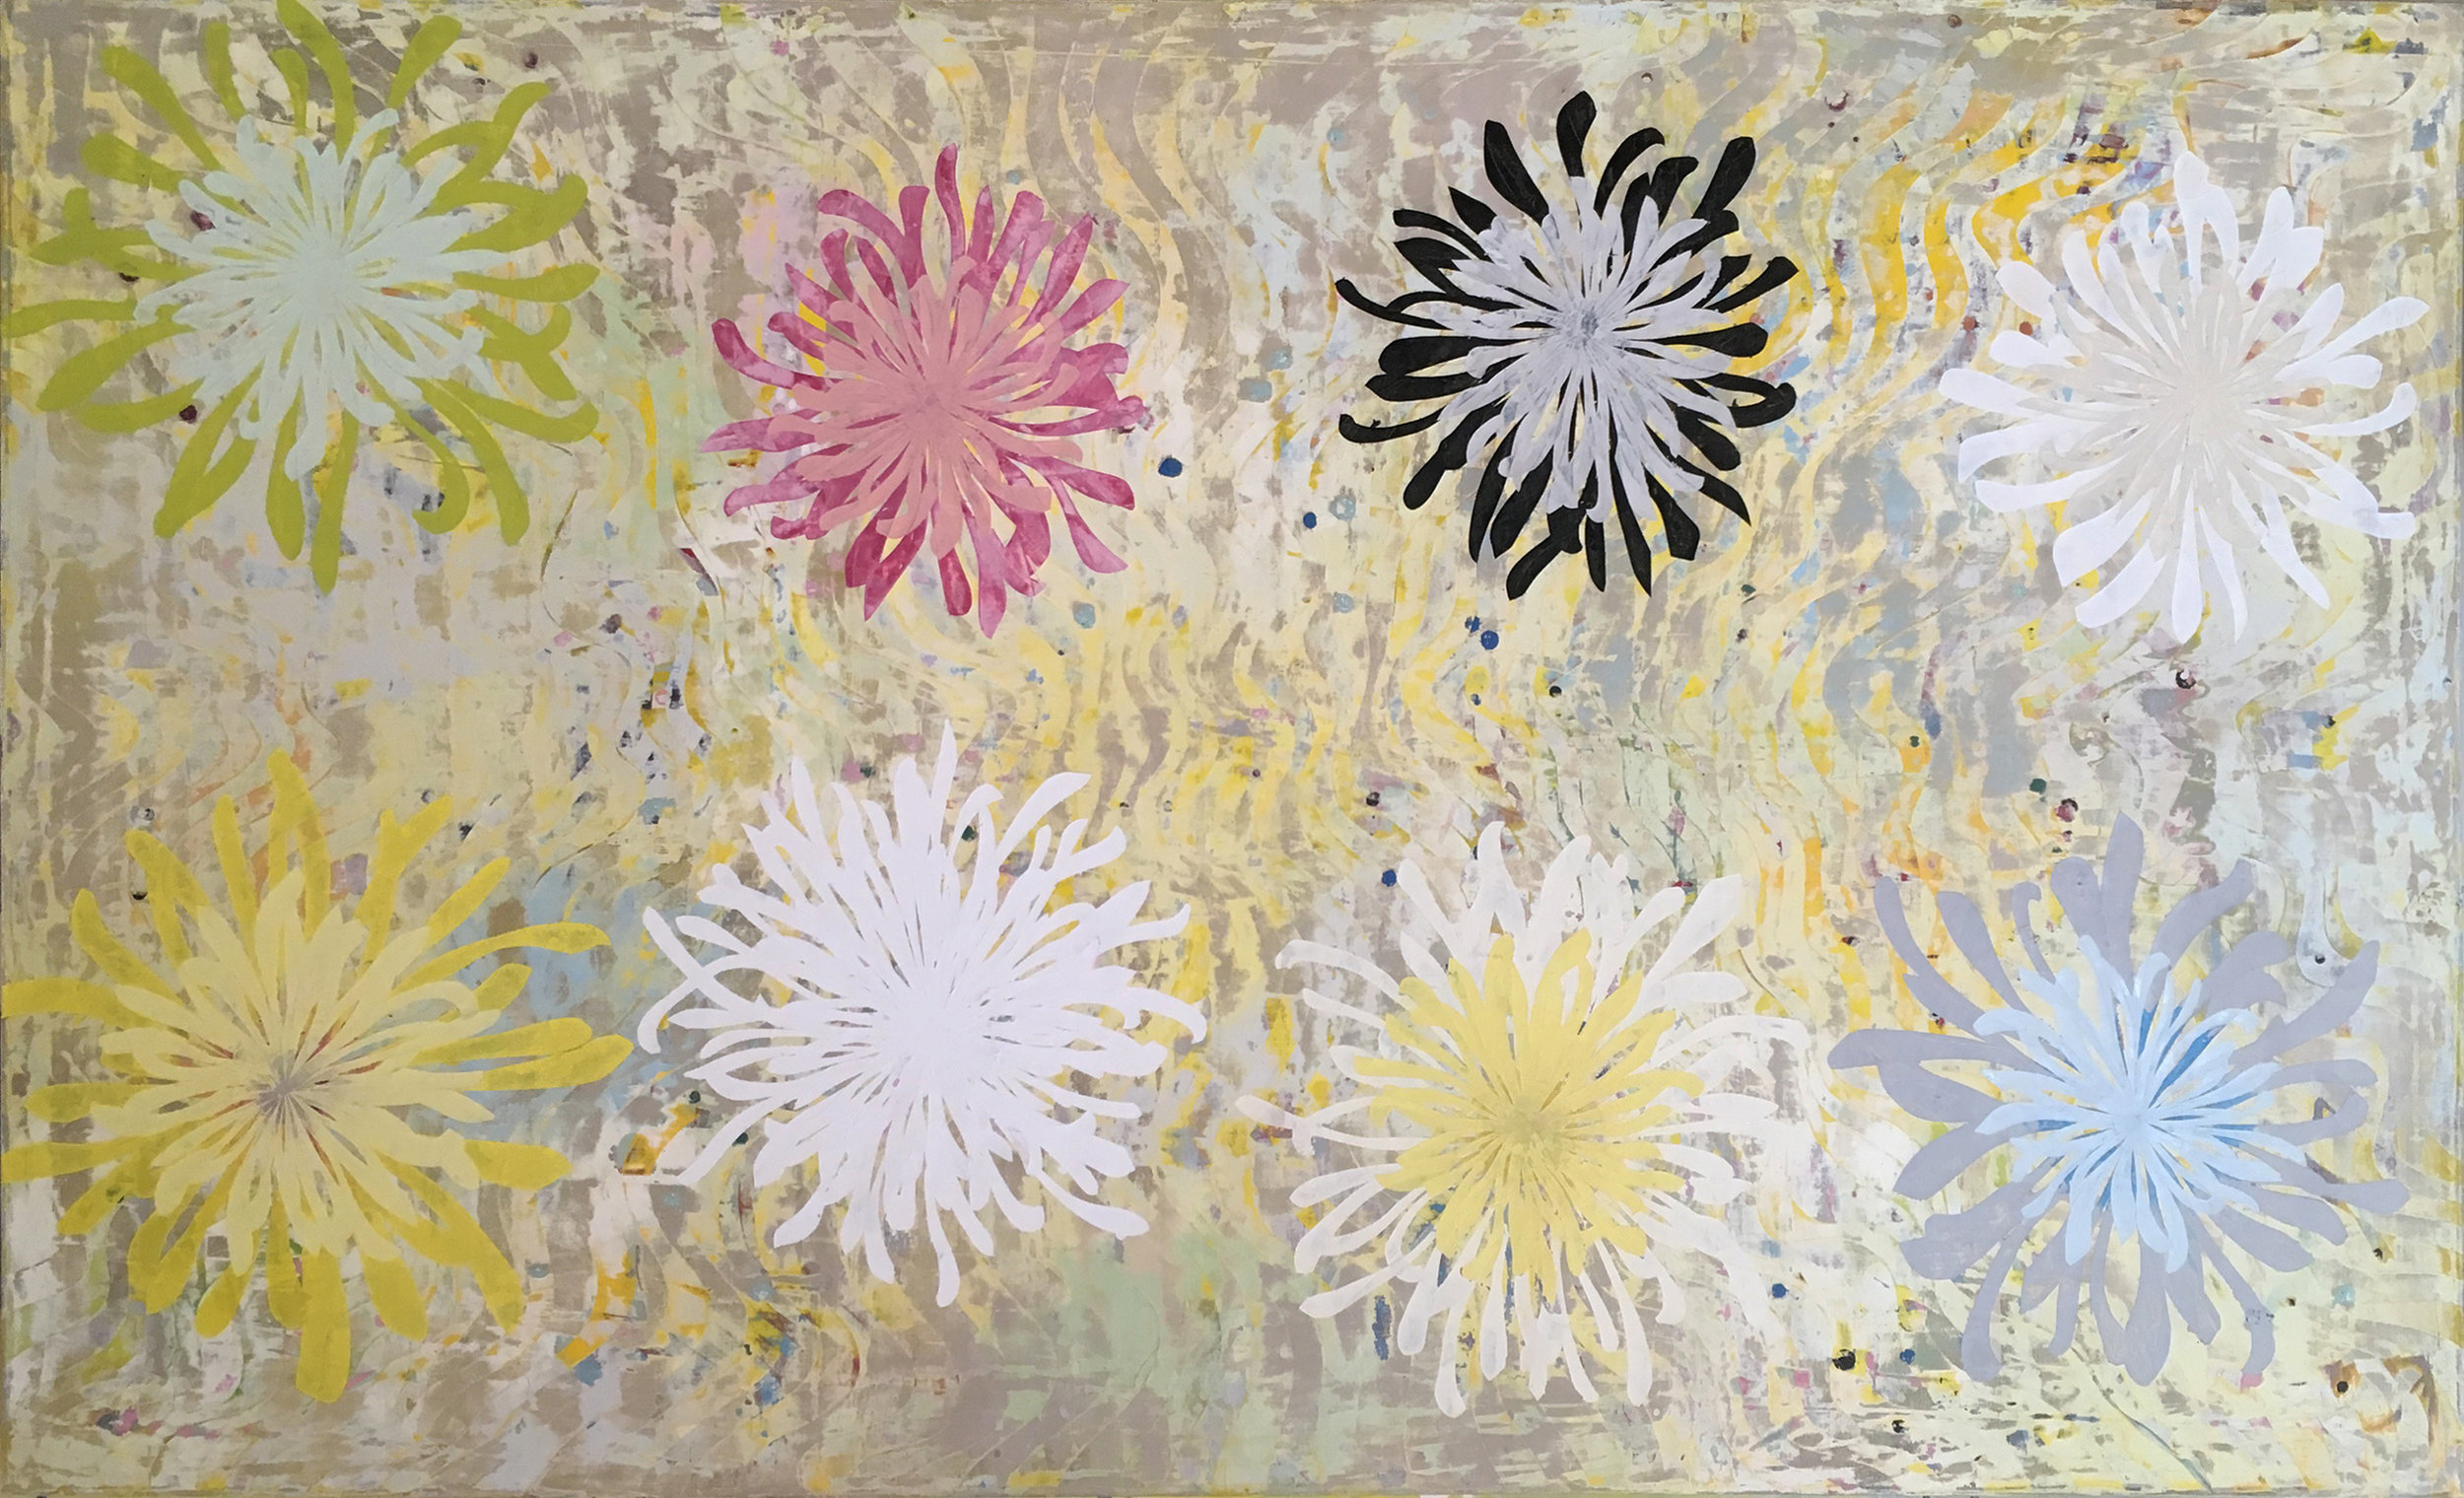 Chrysanthemum Tapestry by Perry Burns, 2018, oil on canvas, 51 x 84 in,  $15,500